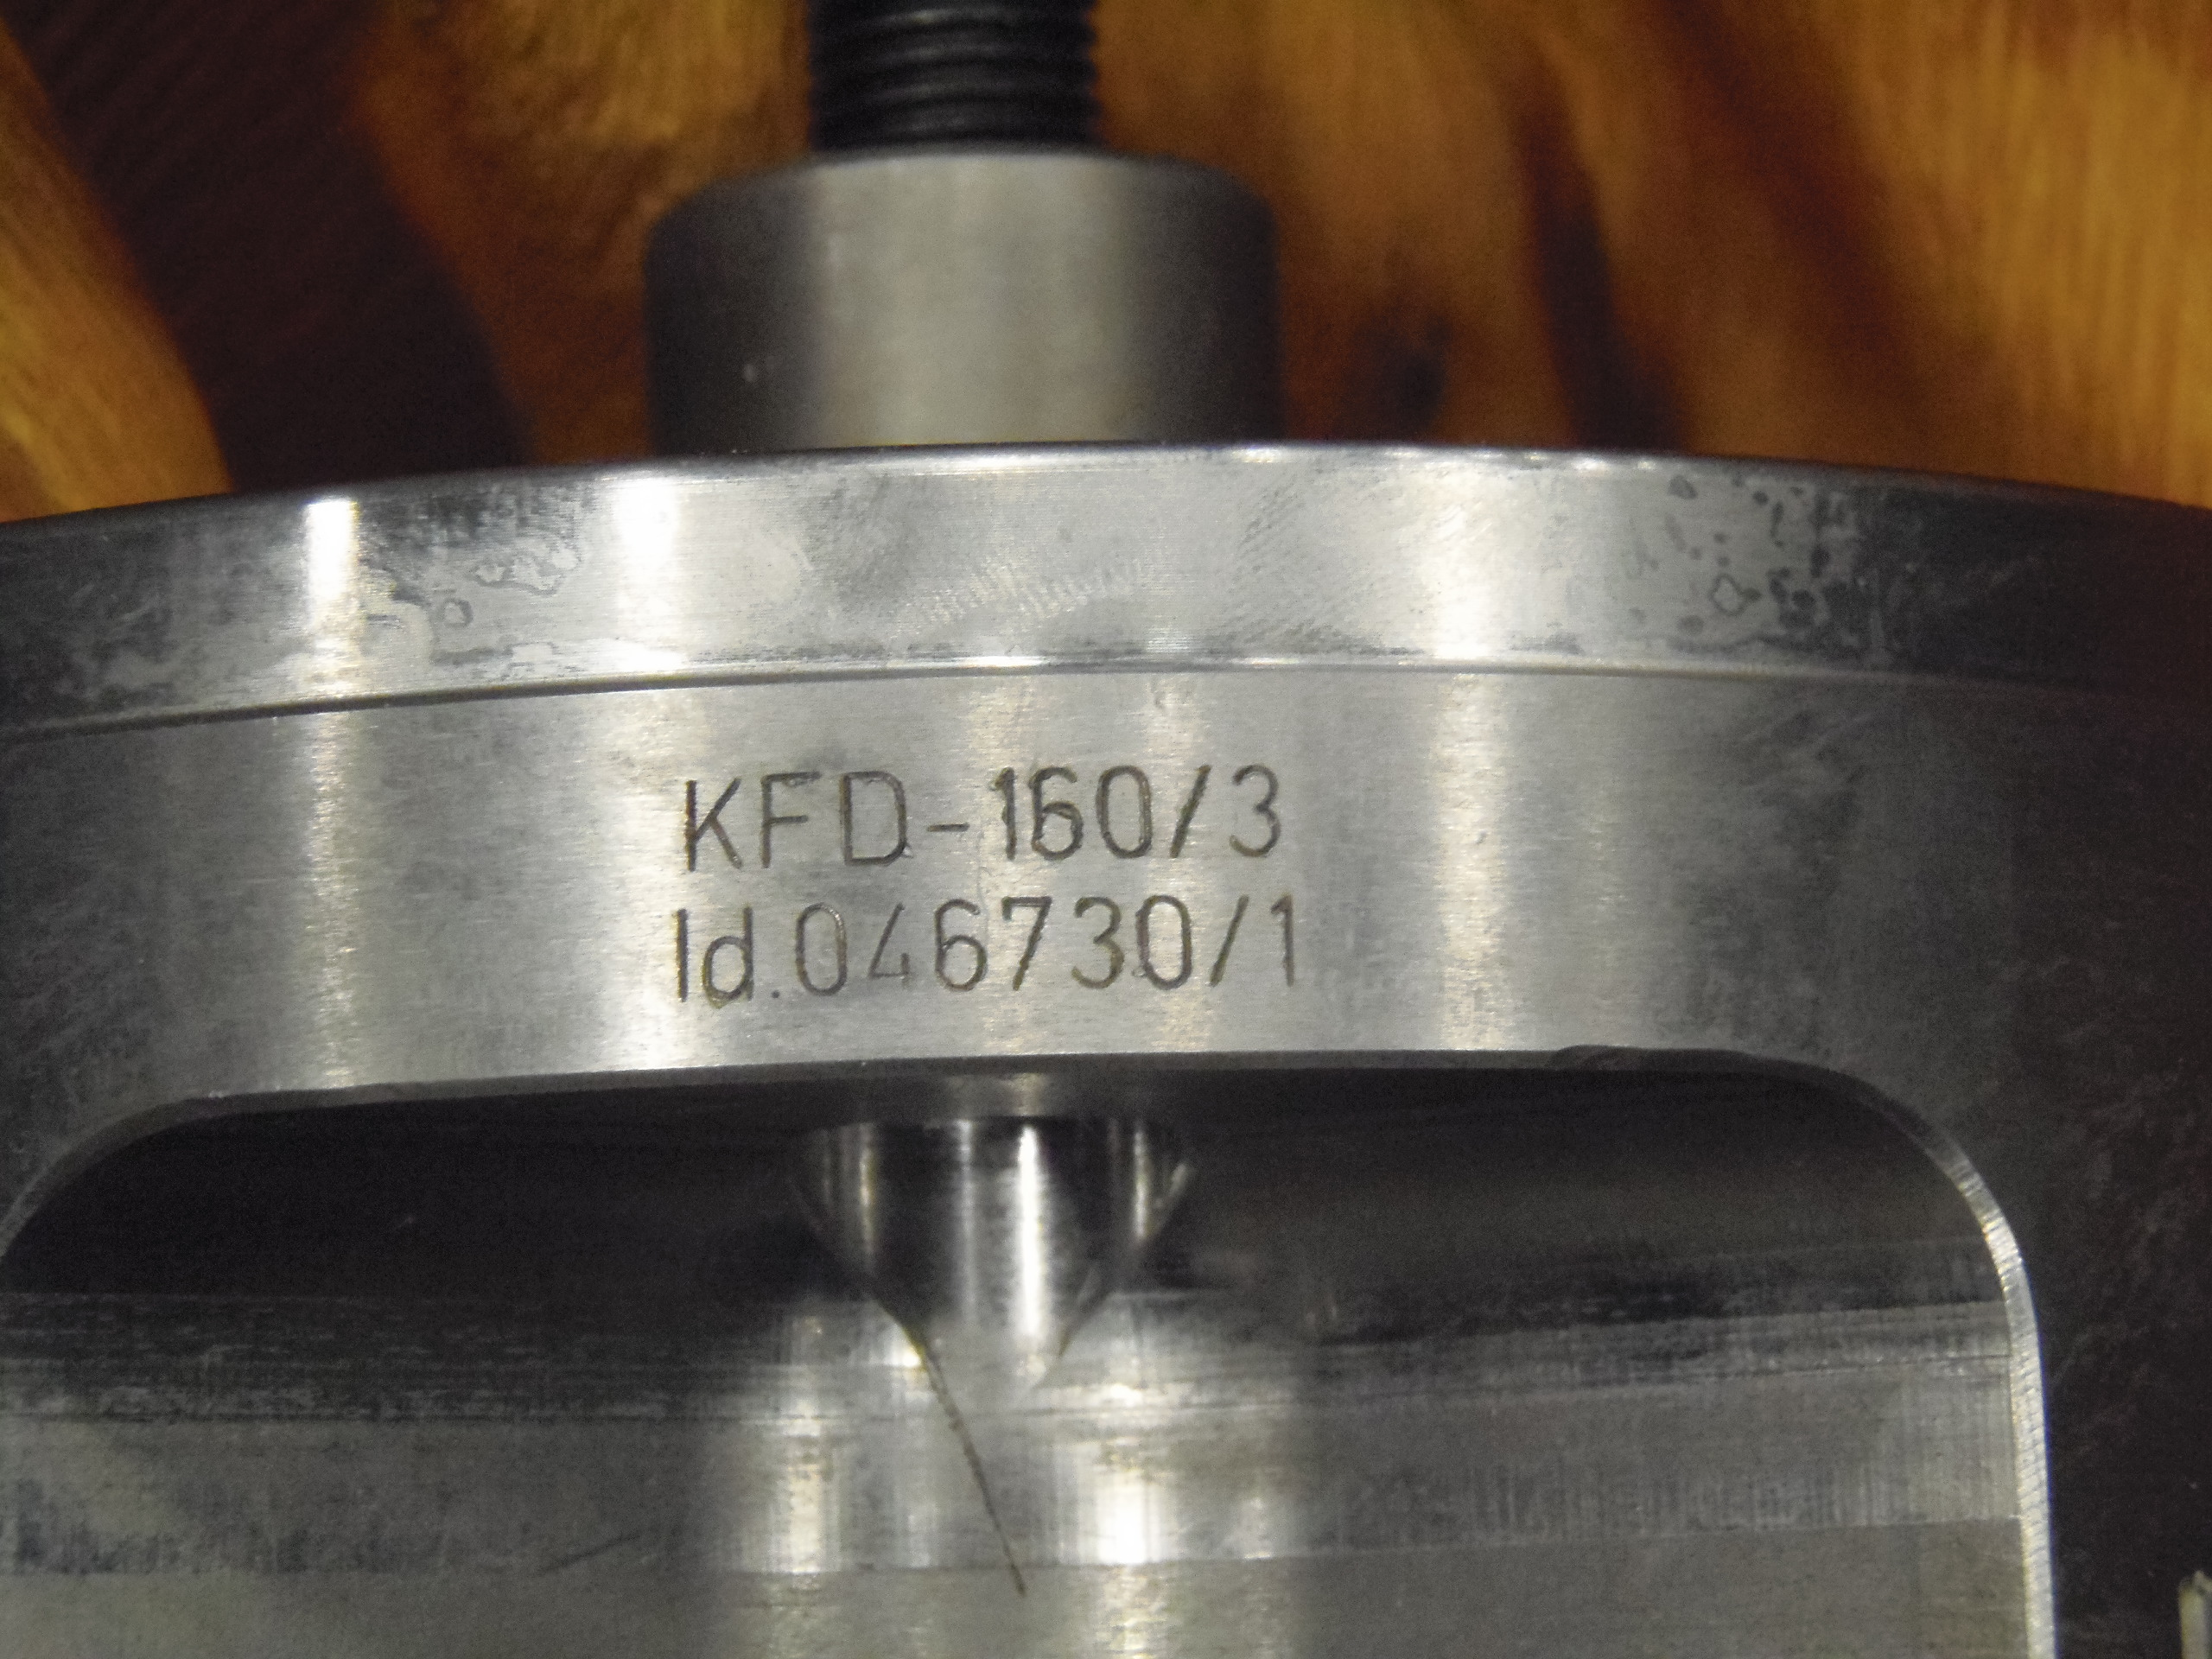 "6.5"" ROHM UNUSED KFD, ITEM 46730, 3 JAW POWER CHUCK"